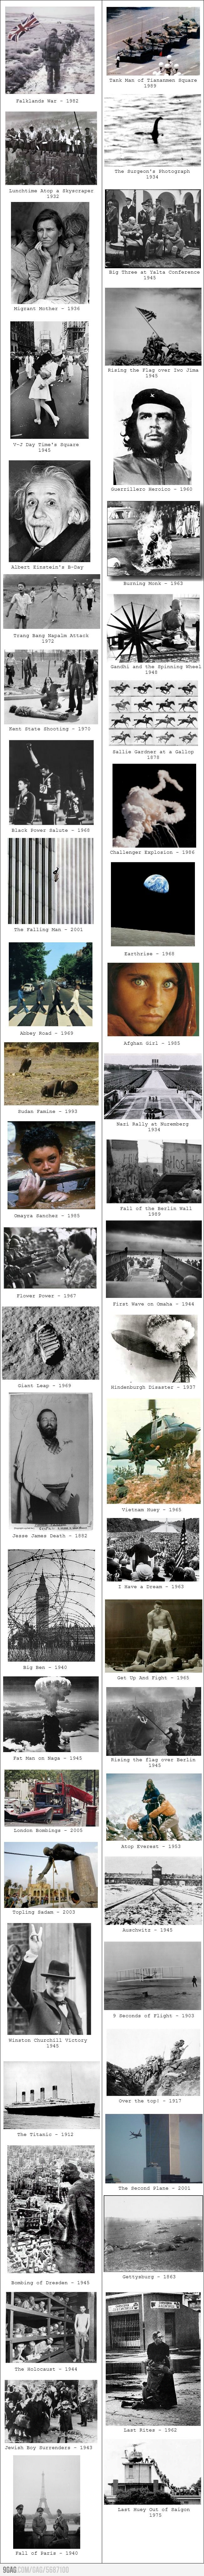 Iconic Pictures of the World. I want to take some amazing photos one day. these are so sad i cried